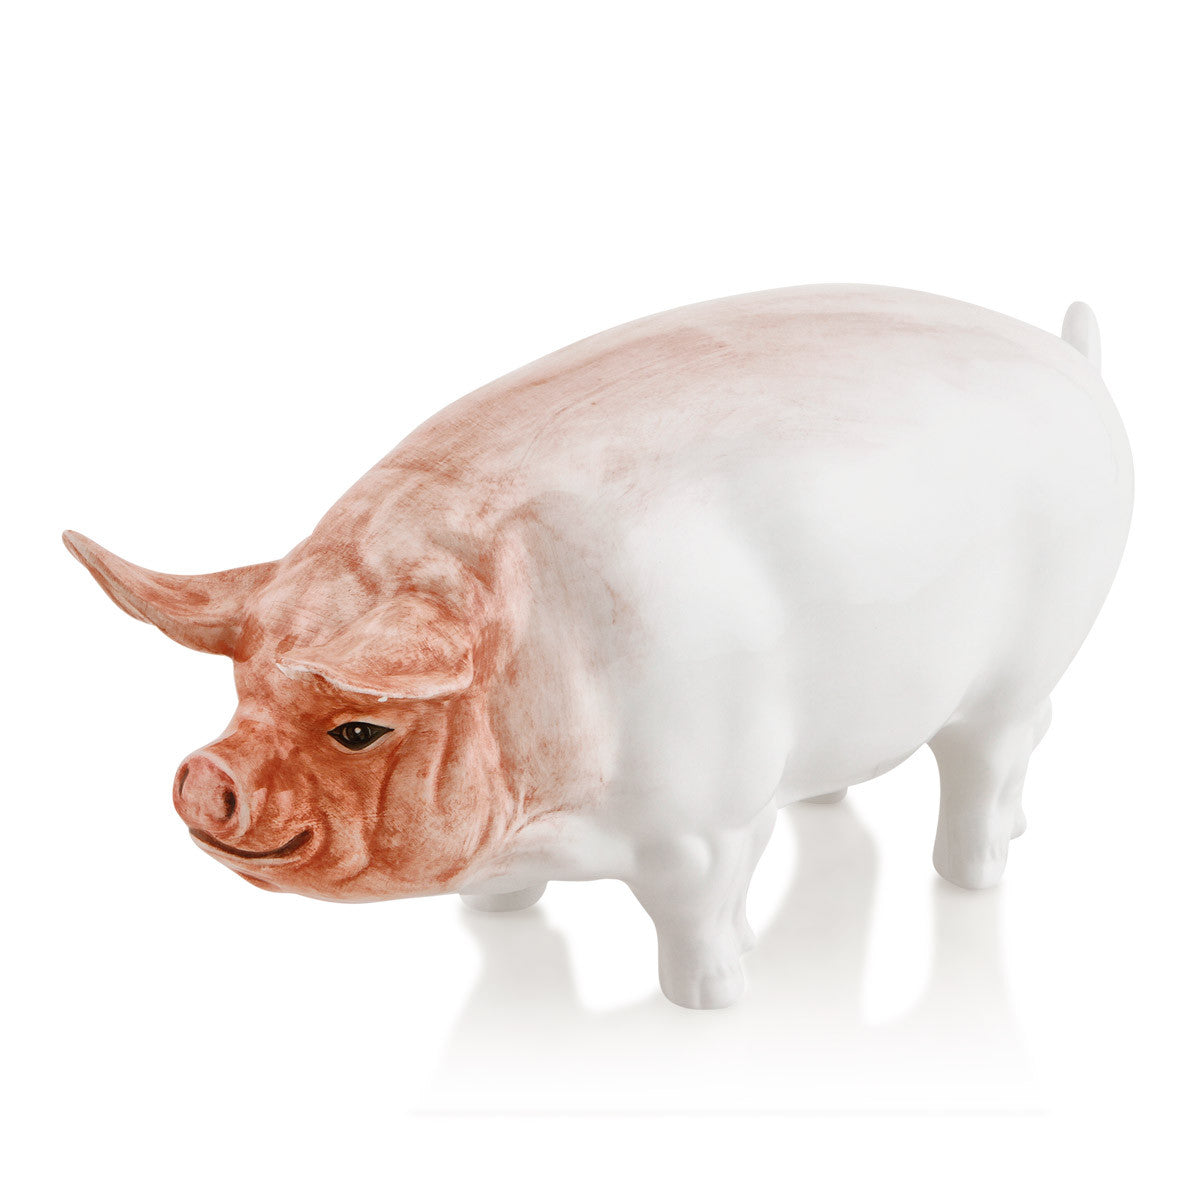 Hand Painted Italian Ceramics pig statue-gifts for animals lovers-Country decor